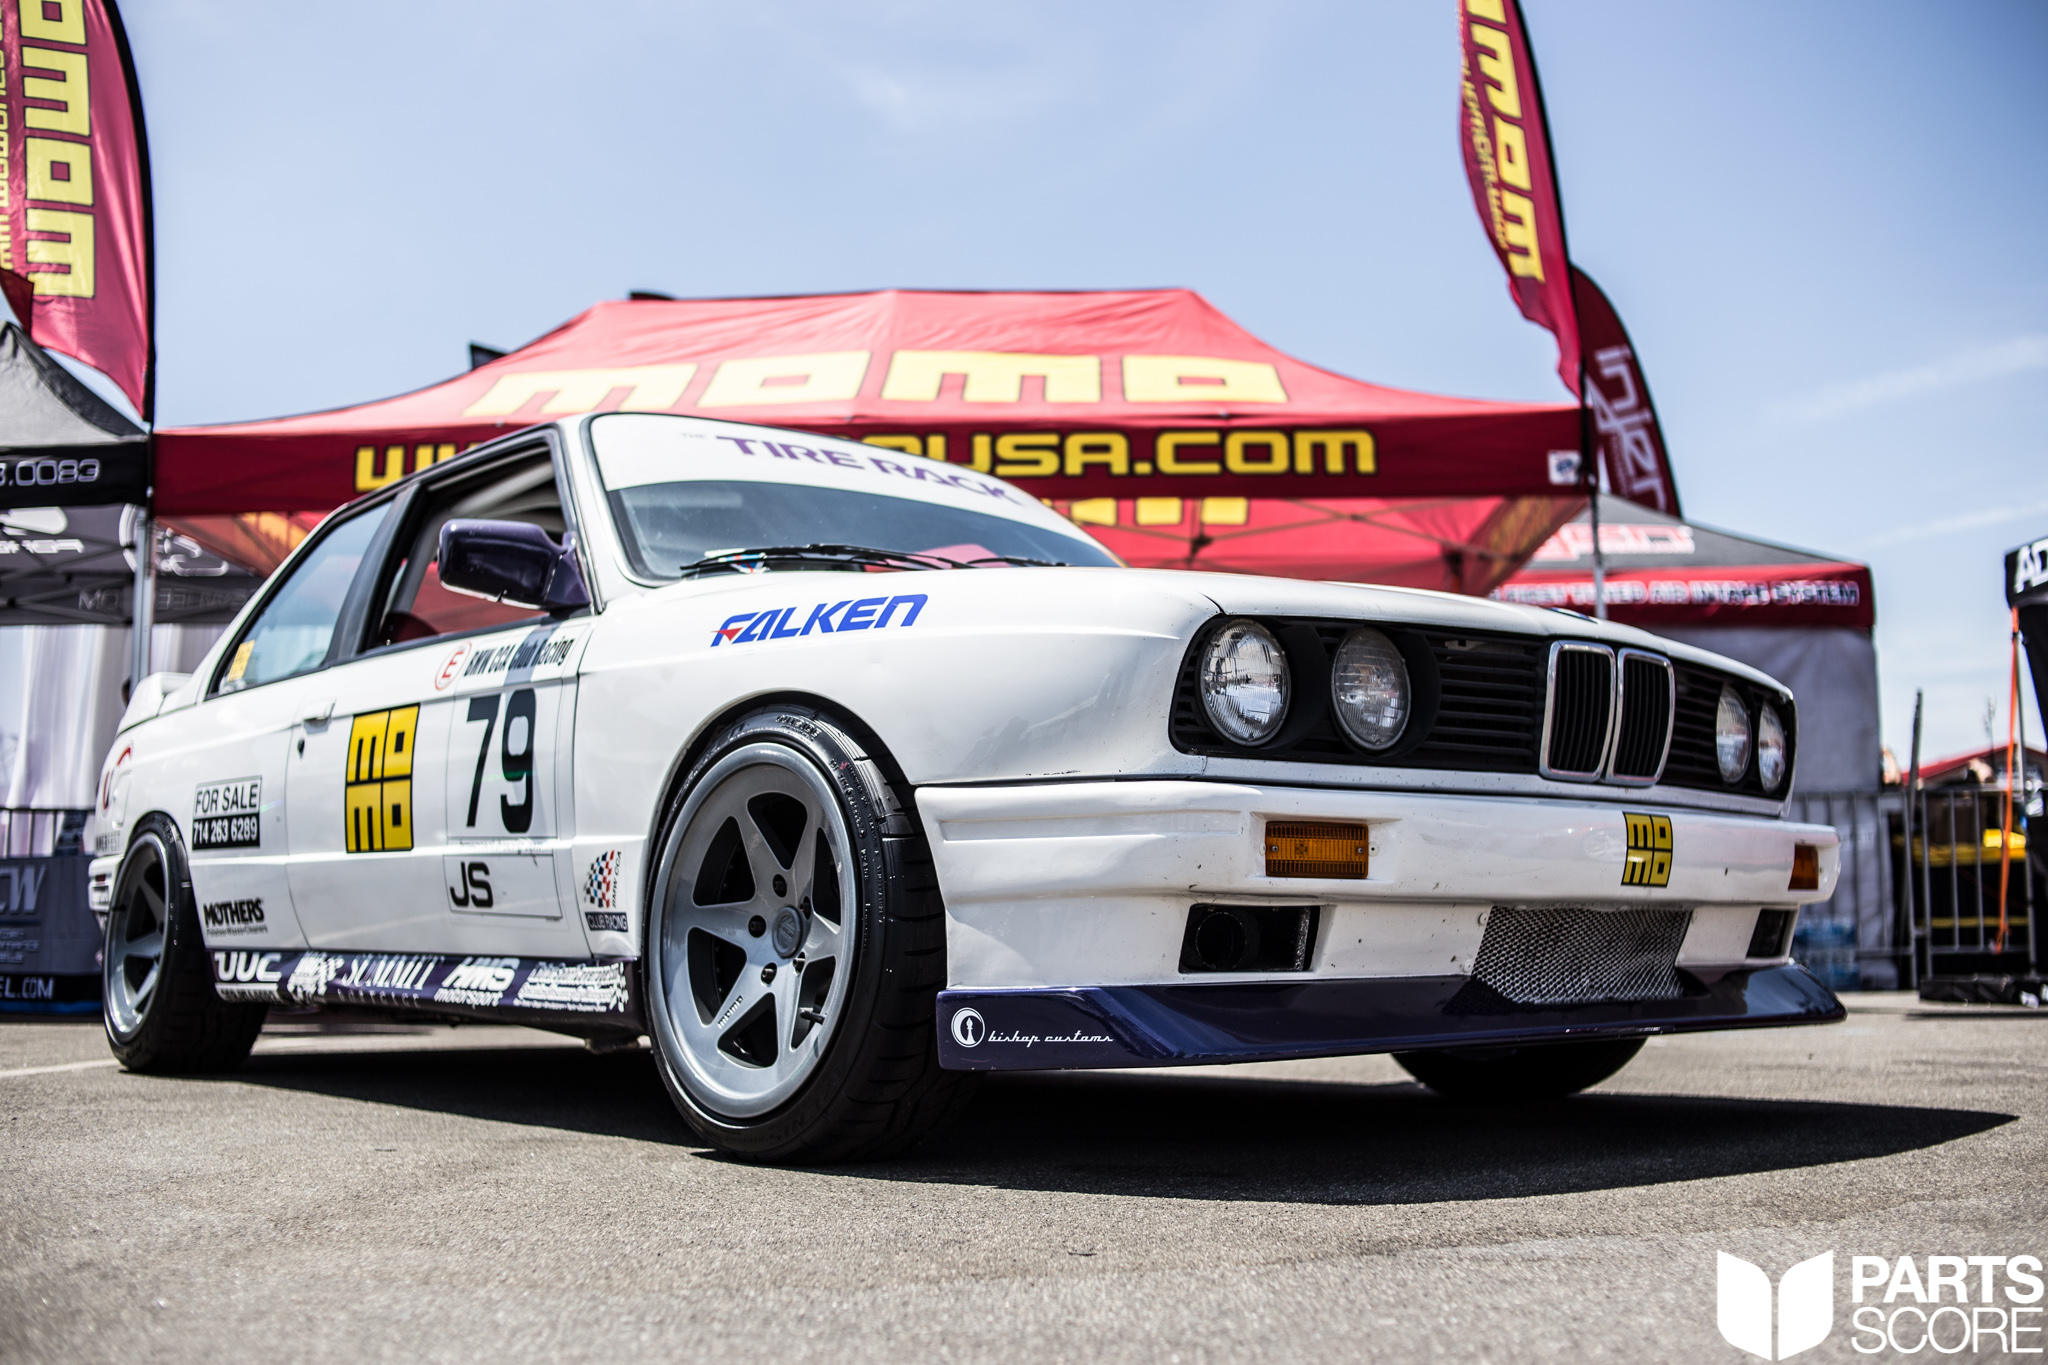 2017, arizona bmw, art car, artcar, bagged, bbs wheels, bimmer, Bimmerfest, bimmerfest 2017, bimmerfest17 #bimmerfest 17, Bimmerfest2016, BMW, bmw art car, bmw classic, bmw fast, bmw fest, bmw individual, bmw m, bmw m performance, bmw m power, bmw m3, bmw north america, bmw show, bmw supercharger, bmwartcar, bmwf80, bmwf82, bmwf83, bmwf8x, bmwgram, bmwgramm, bmwm, bmwm3, bmwm4, bmwm5, bmwmods, bmwmotorsport, bmwmperformance, bmwmpower, BMWNA, bmwnation, BMWNorthAmerica, bmwracing, bmwstance, boost, california, car show, carbon, carbonfiber, cargram, cargramm, carshow, chandler bmw, csfrace, downforce, dtm, dtmstyle, e90, e90m3, e92, e92m3, e93, ESS, ess tuning, ess tuning arizona, ess tuning install, esstuned, Esstuning, f80, f82, fast, gilbert bmw, insane, jeff koons, luxury, m power, m1, m2, m3, m4, m5, make my bmw faster, mclarenf1, mesa bmw, modification, motorsport, mperformance, mpower, Next100, parts score, partsscore, peoria, performance, performance bmw, phoenix, phoenix bmw, power, race car, racecar, racing, rw carbon, rwcarbon, s65, scottsdale, scottsdale az, scottsdale bmw, sheerdrivingpleasure, show, slammed, stance, static, Supercharged, supercharged m3, supercharger, supercharger installation, tempe, tempe bmw, toyo, toyotires, undertray, v8